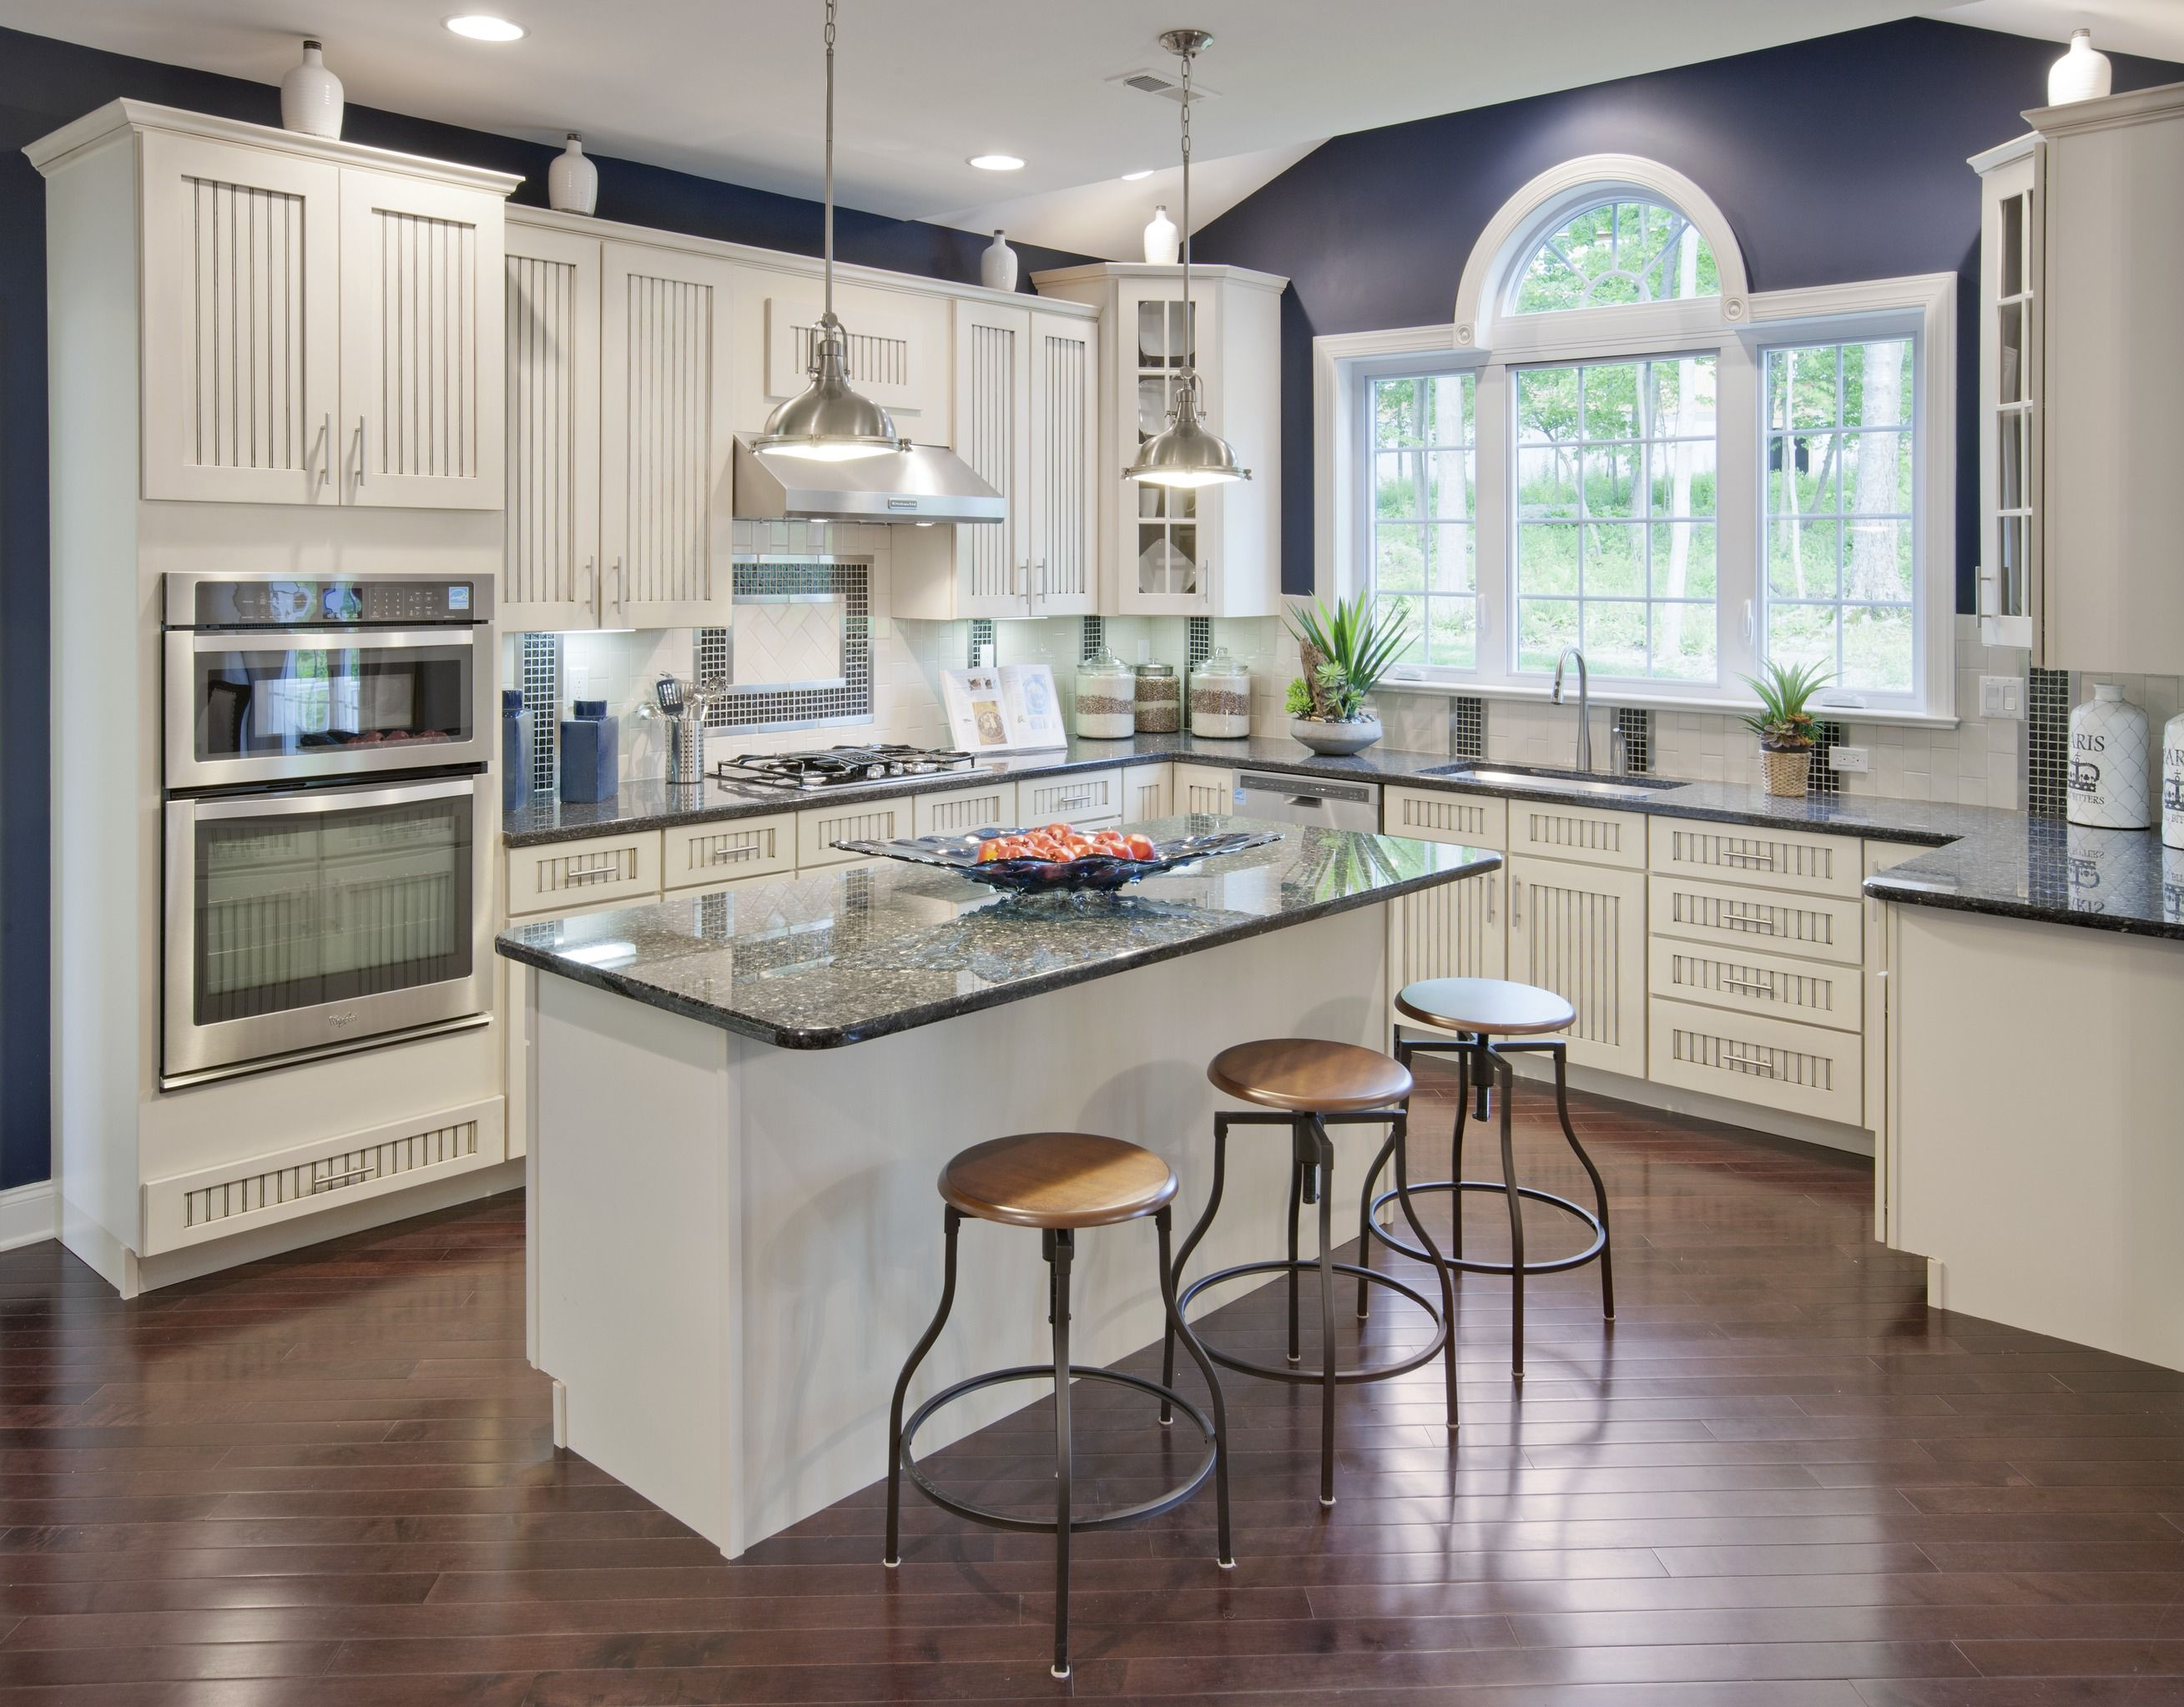 Gourmet Kitchen Remodel Morris Nj: Beautiful Kitchen With Purple Accent Wall (Everett Federal